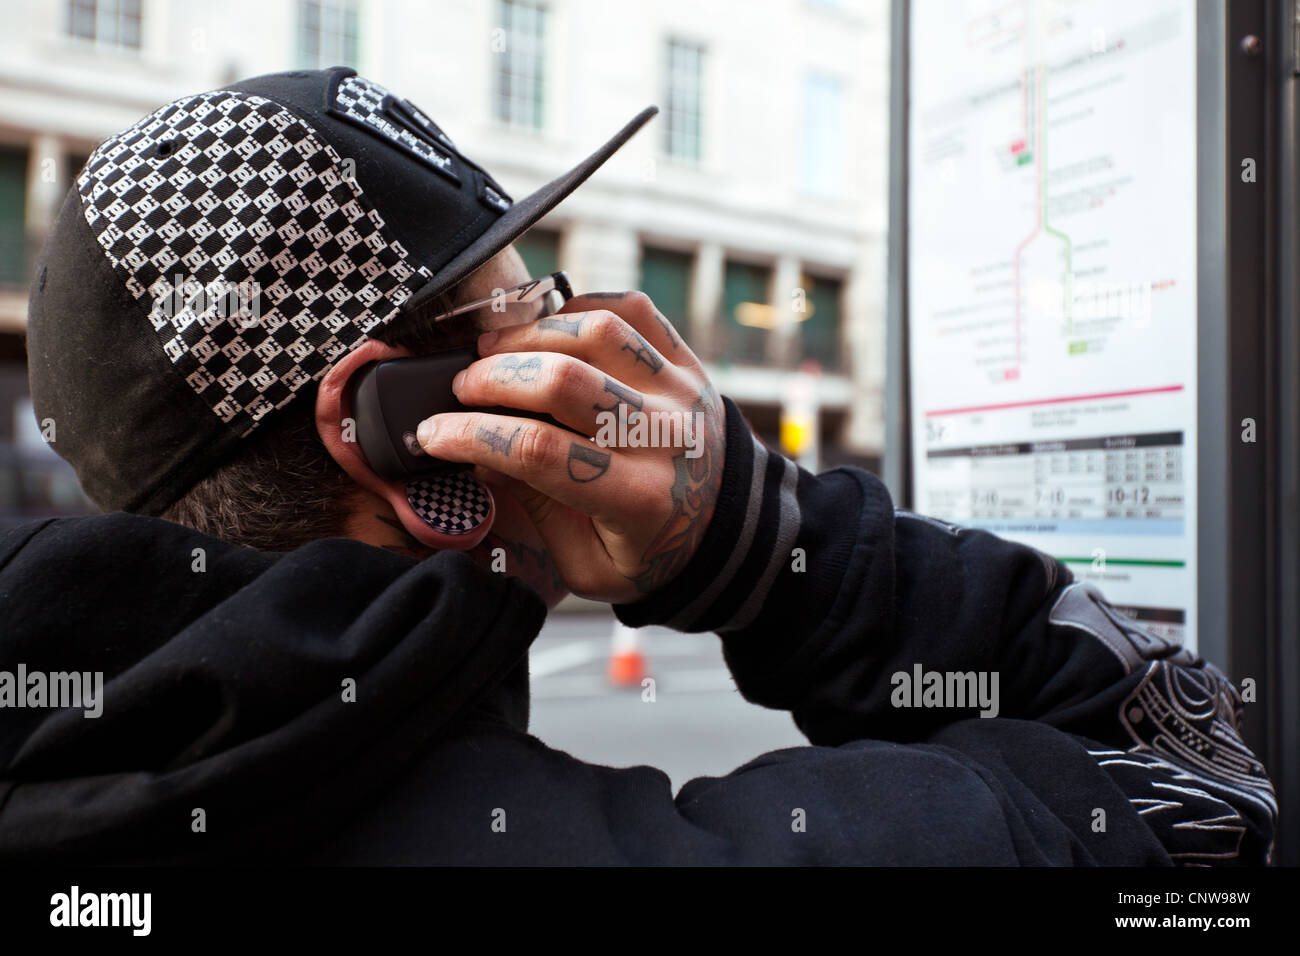 Europe England London, a young man in Piccadilly Circus - Stock Image